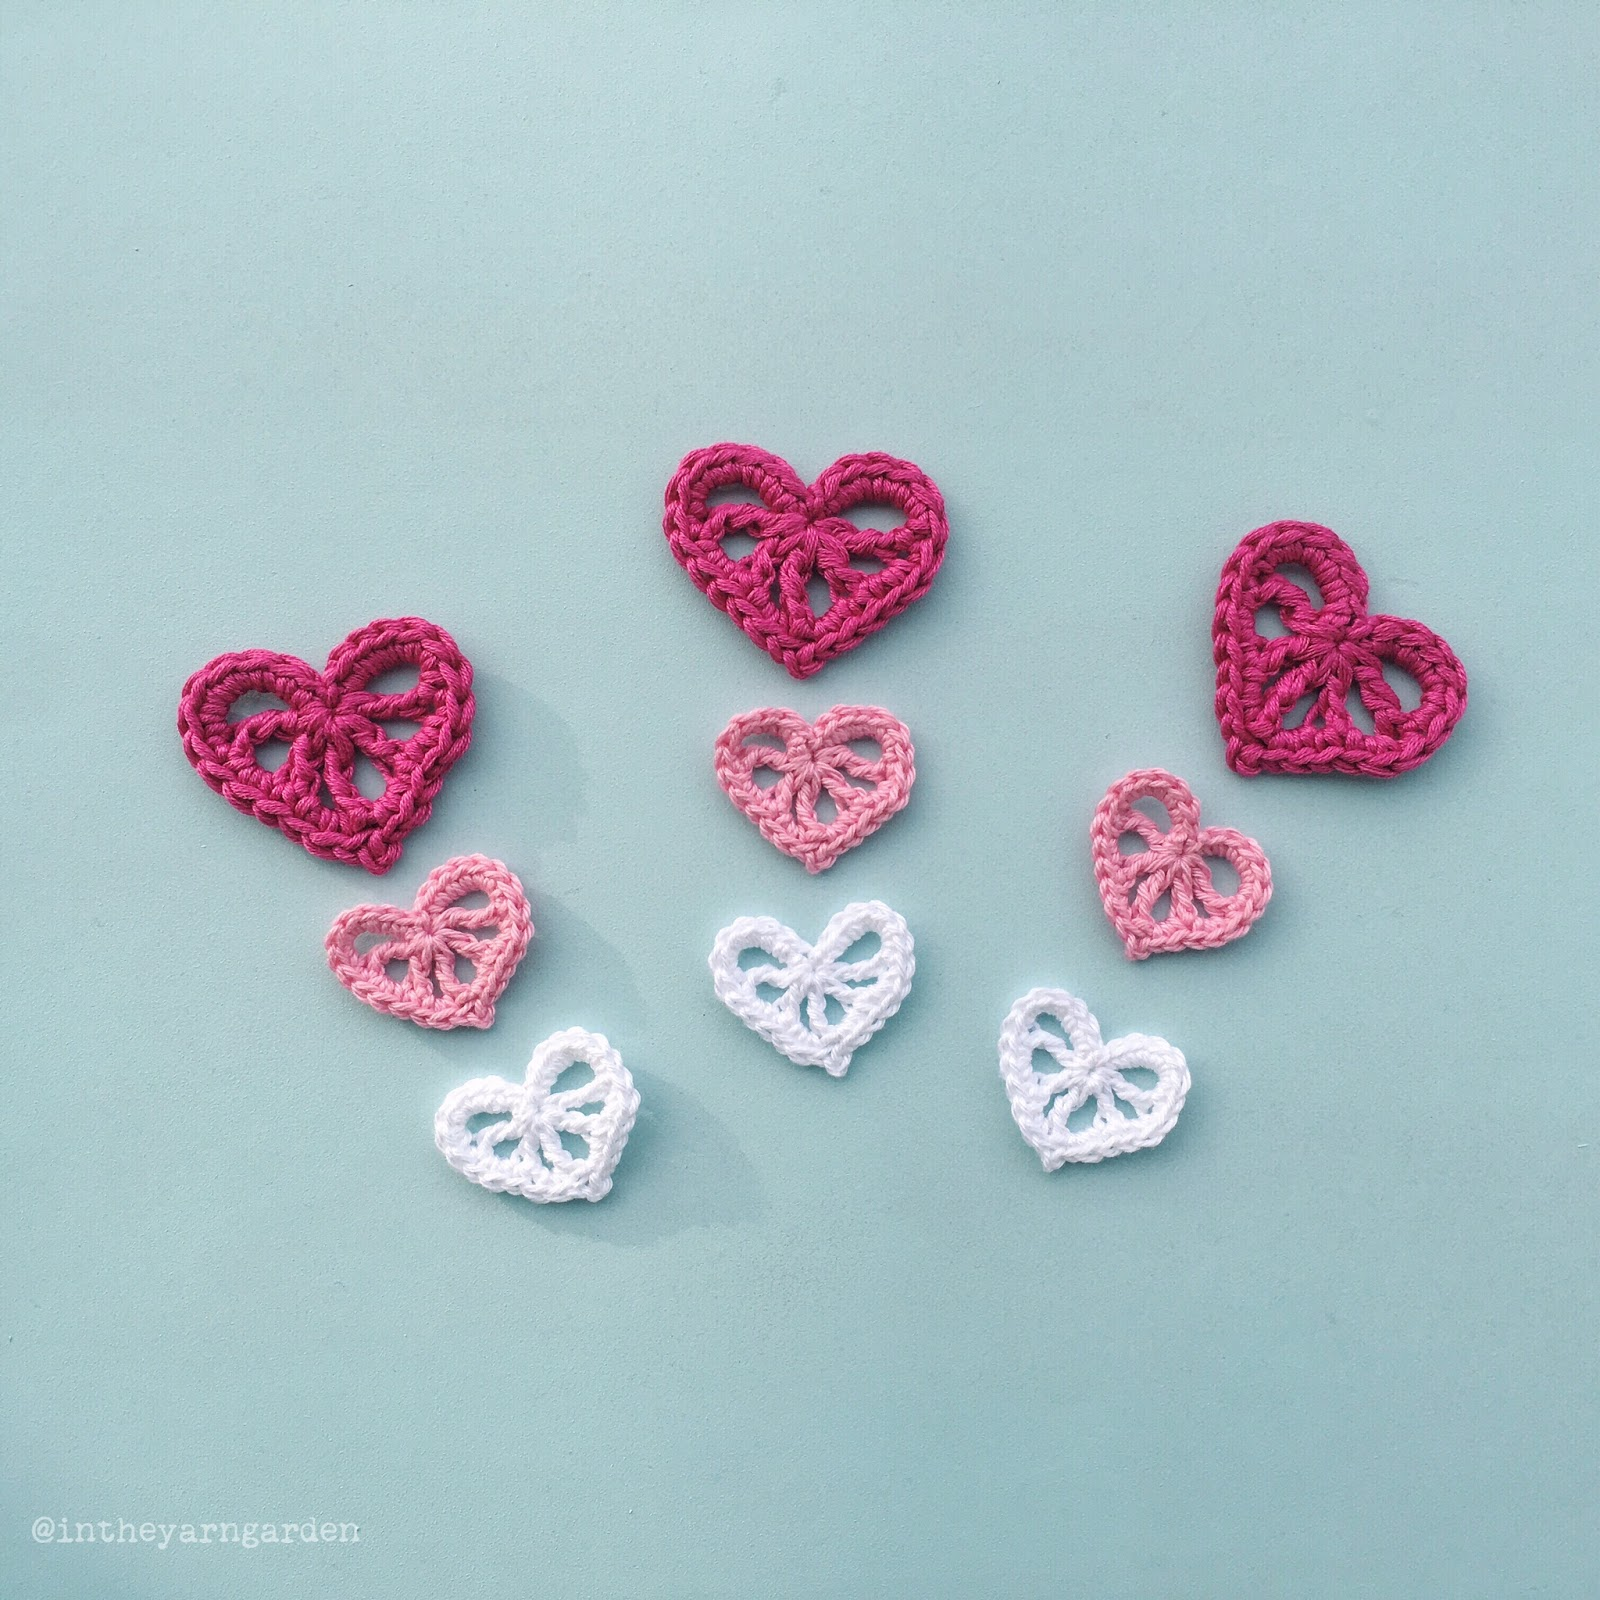 Decorative Crochet : Decorative crochet hearts